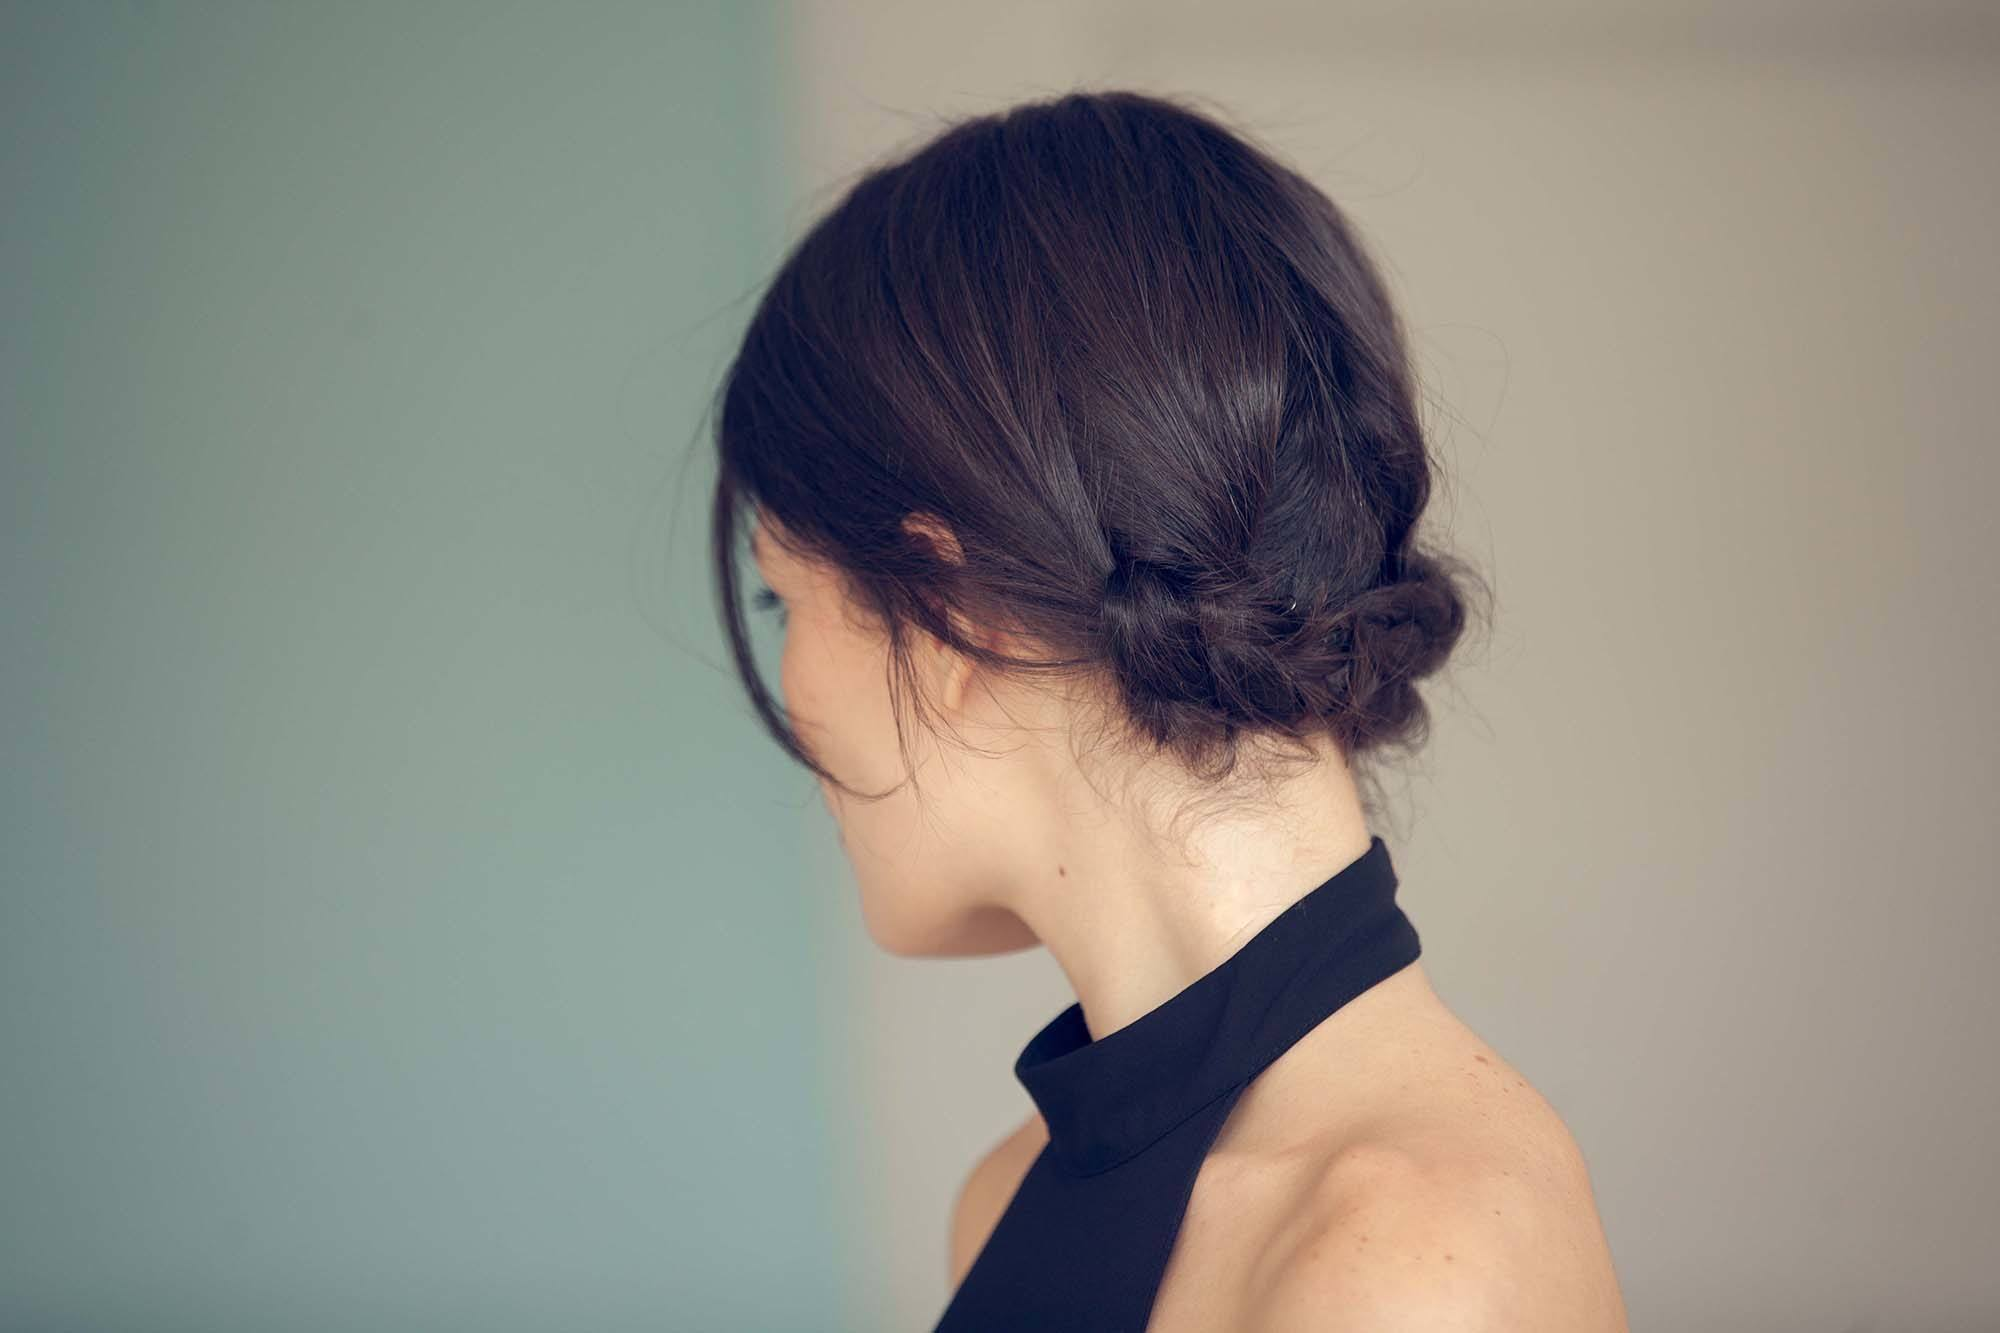 Club hairstyles: Shot from behind of a brunette with a braided updo, wearing a black halterneck top